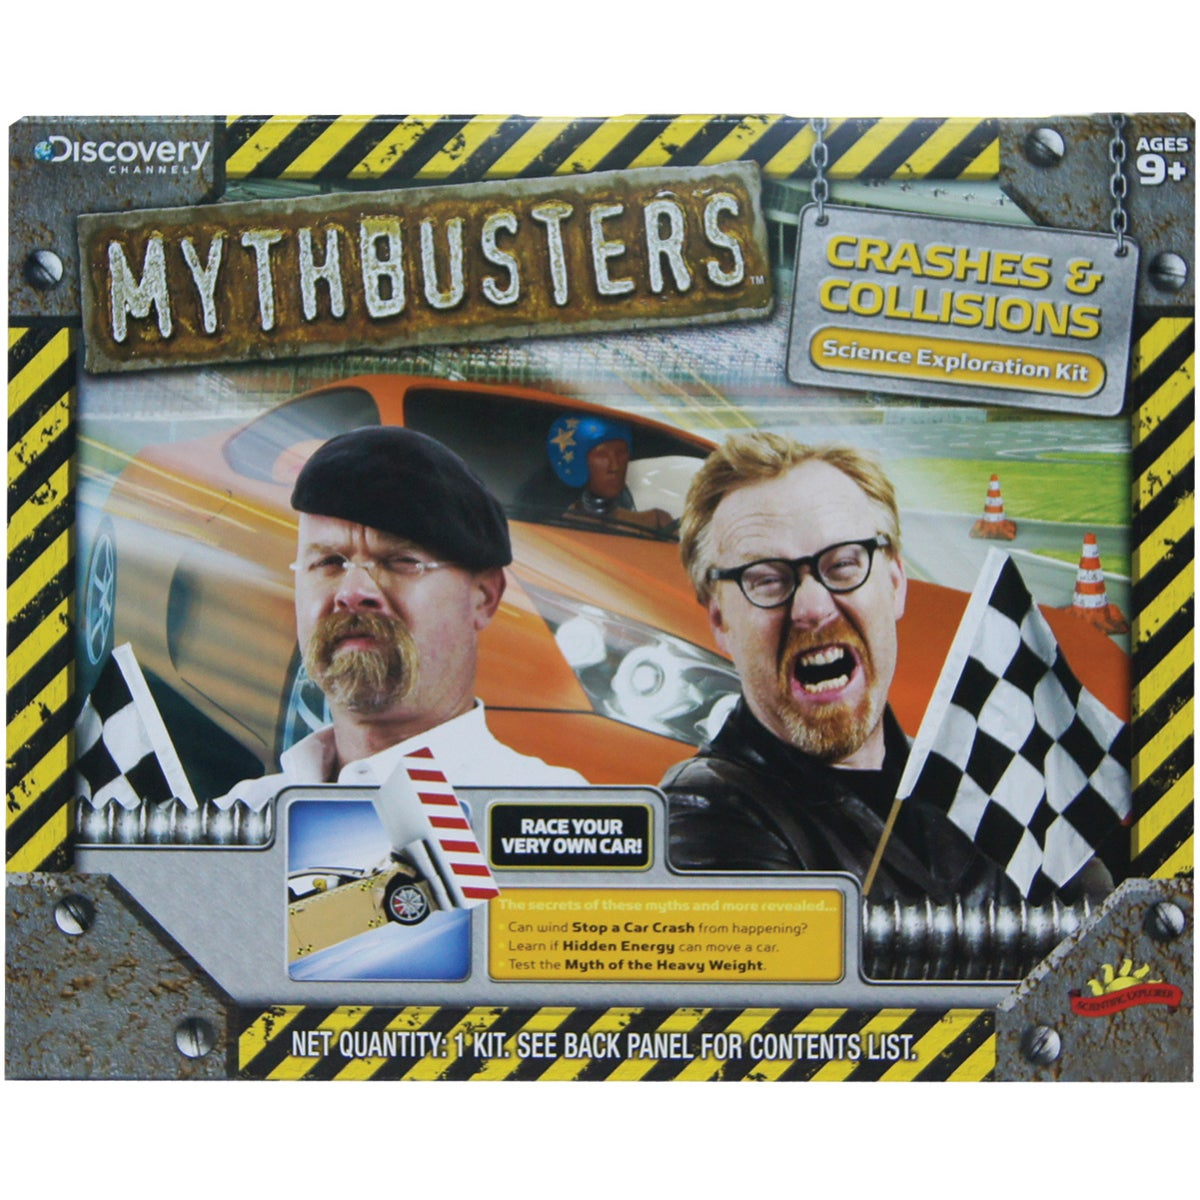 Mythbusters Crashes And Collisions Kit